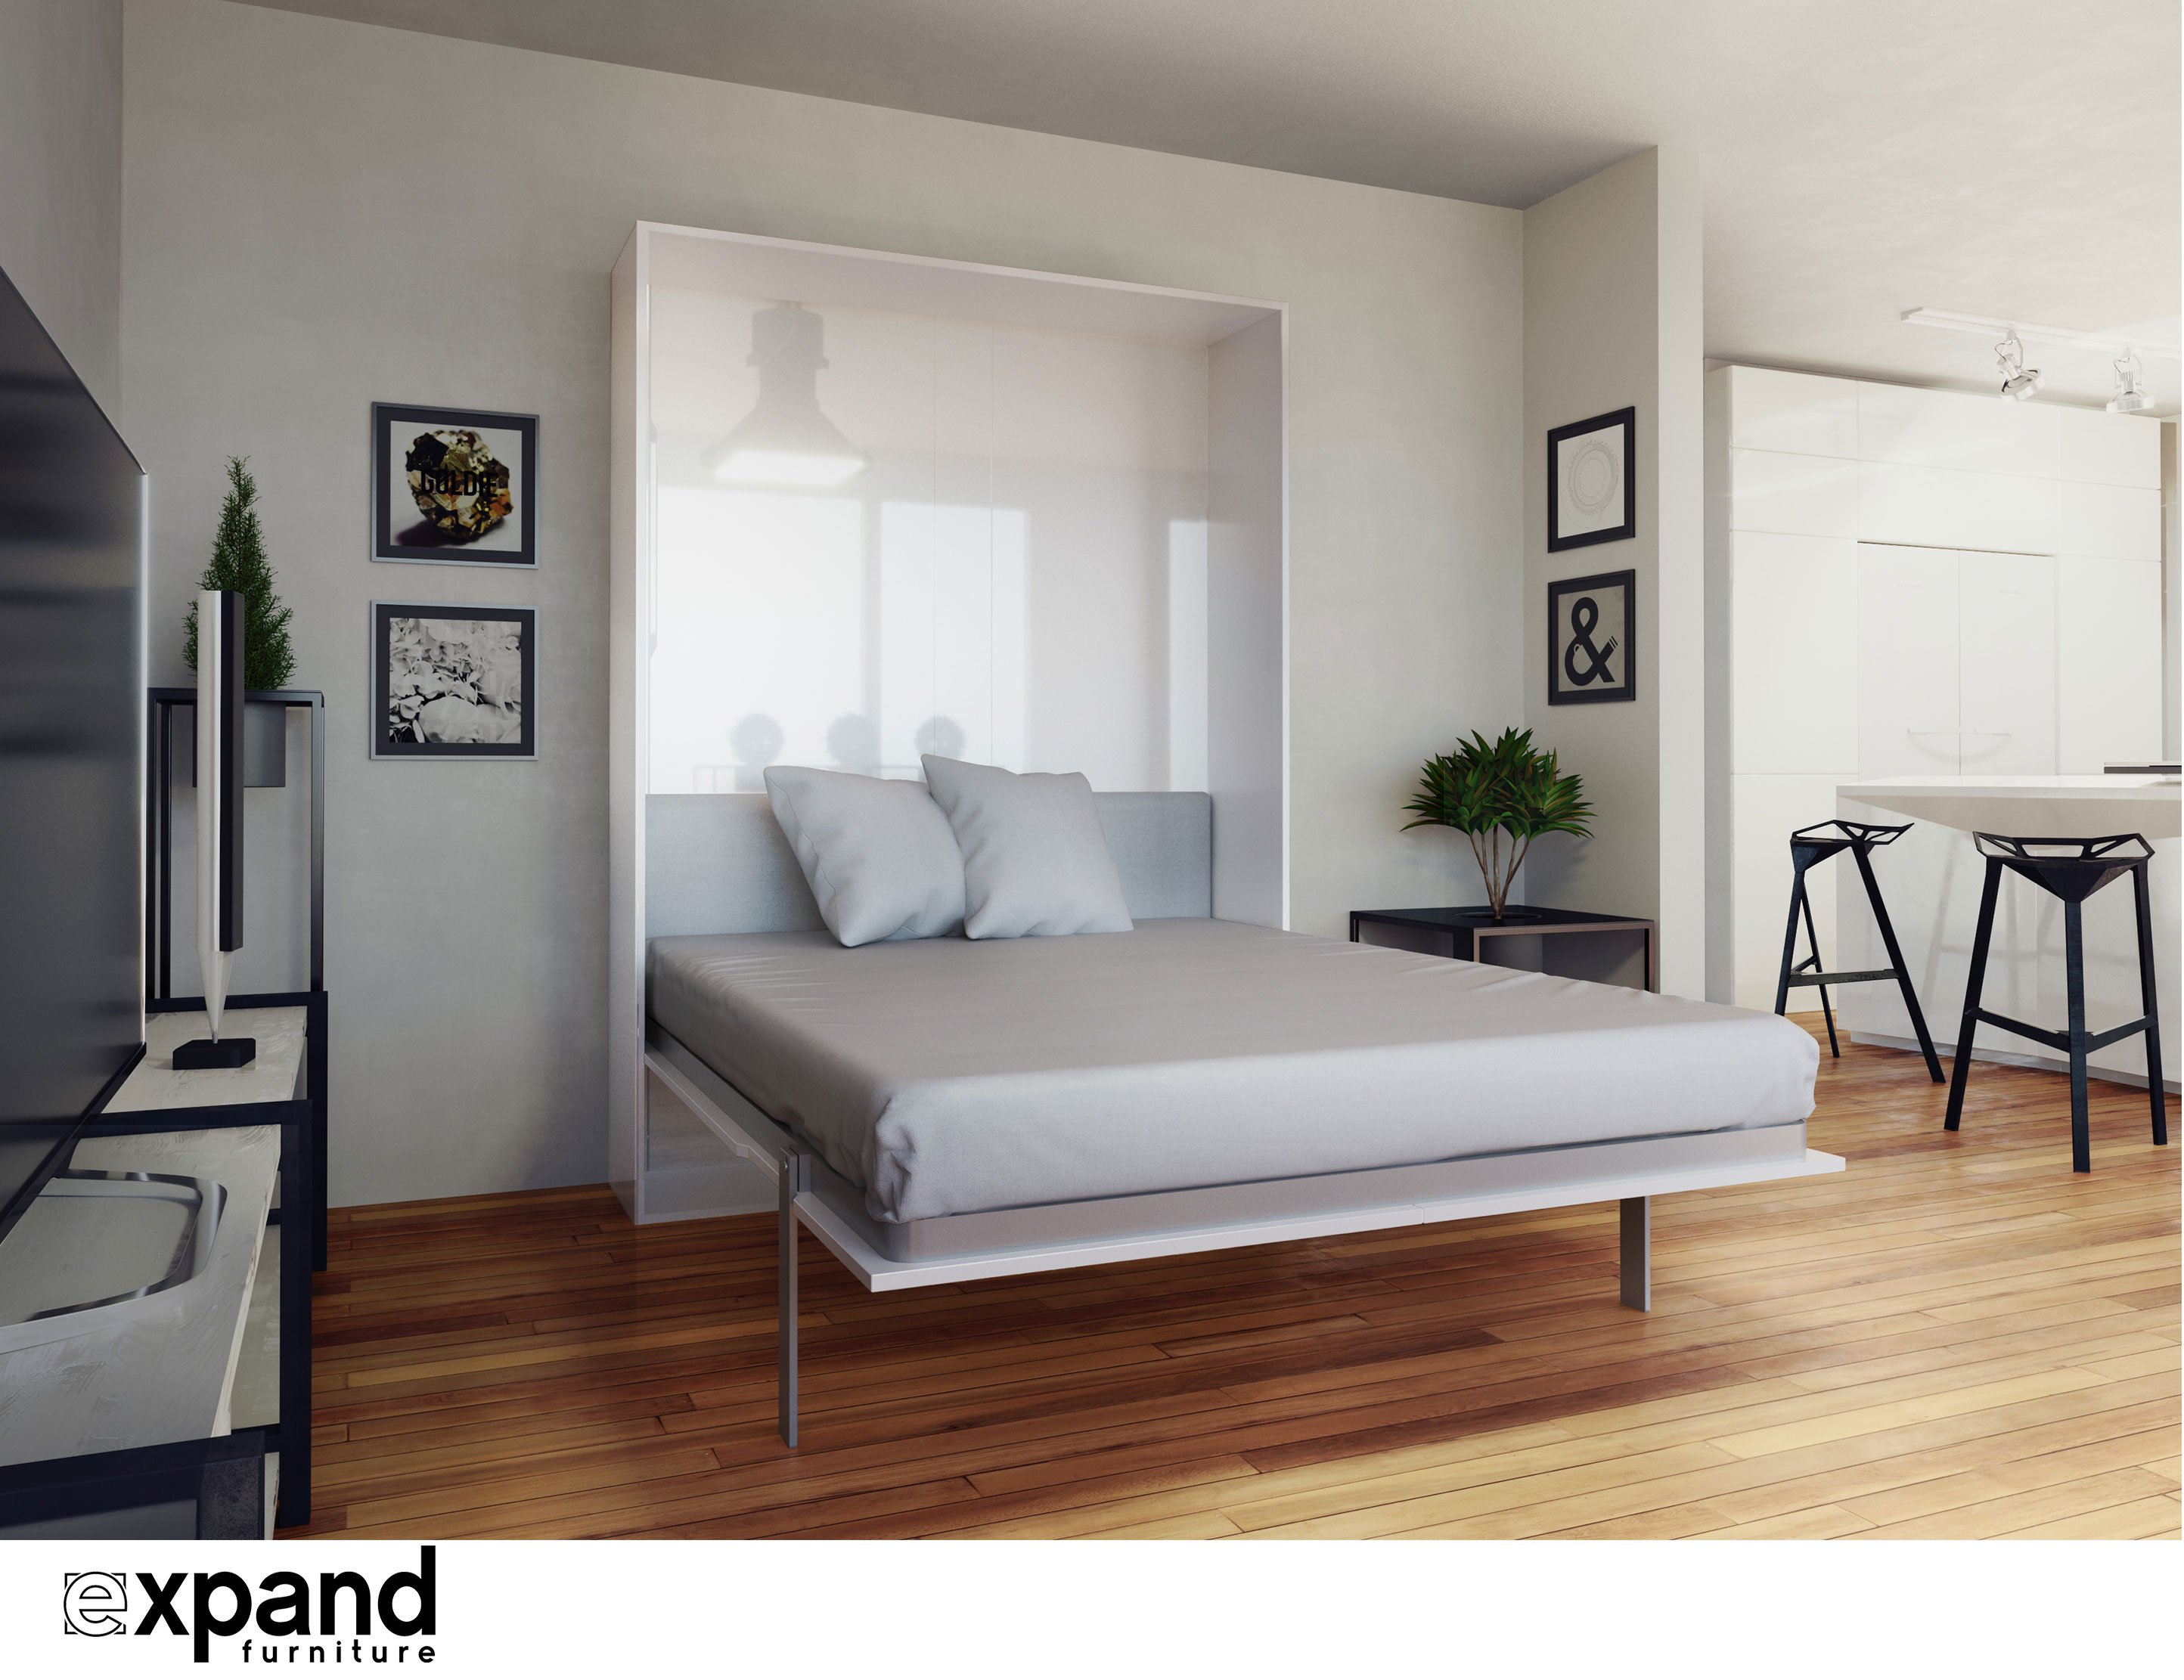 Inspirational Murphy Bed Kit Interior Design And Home Inspiration Ihomedge Com